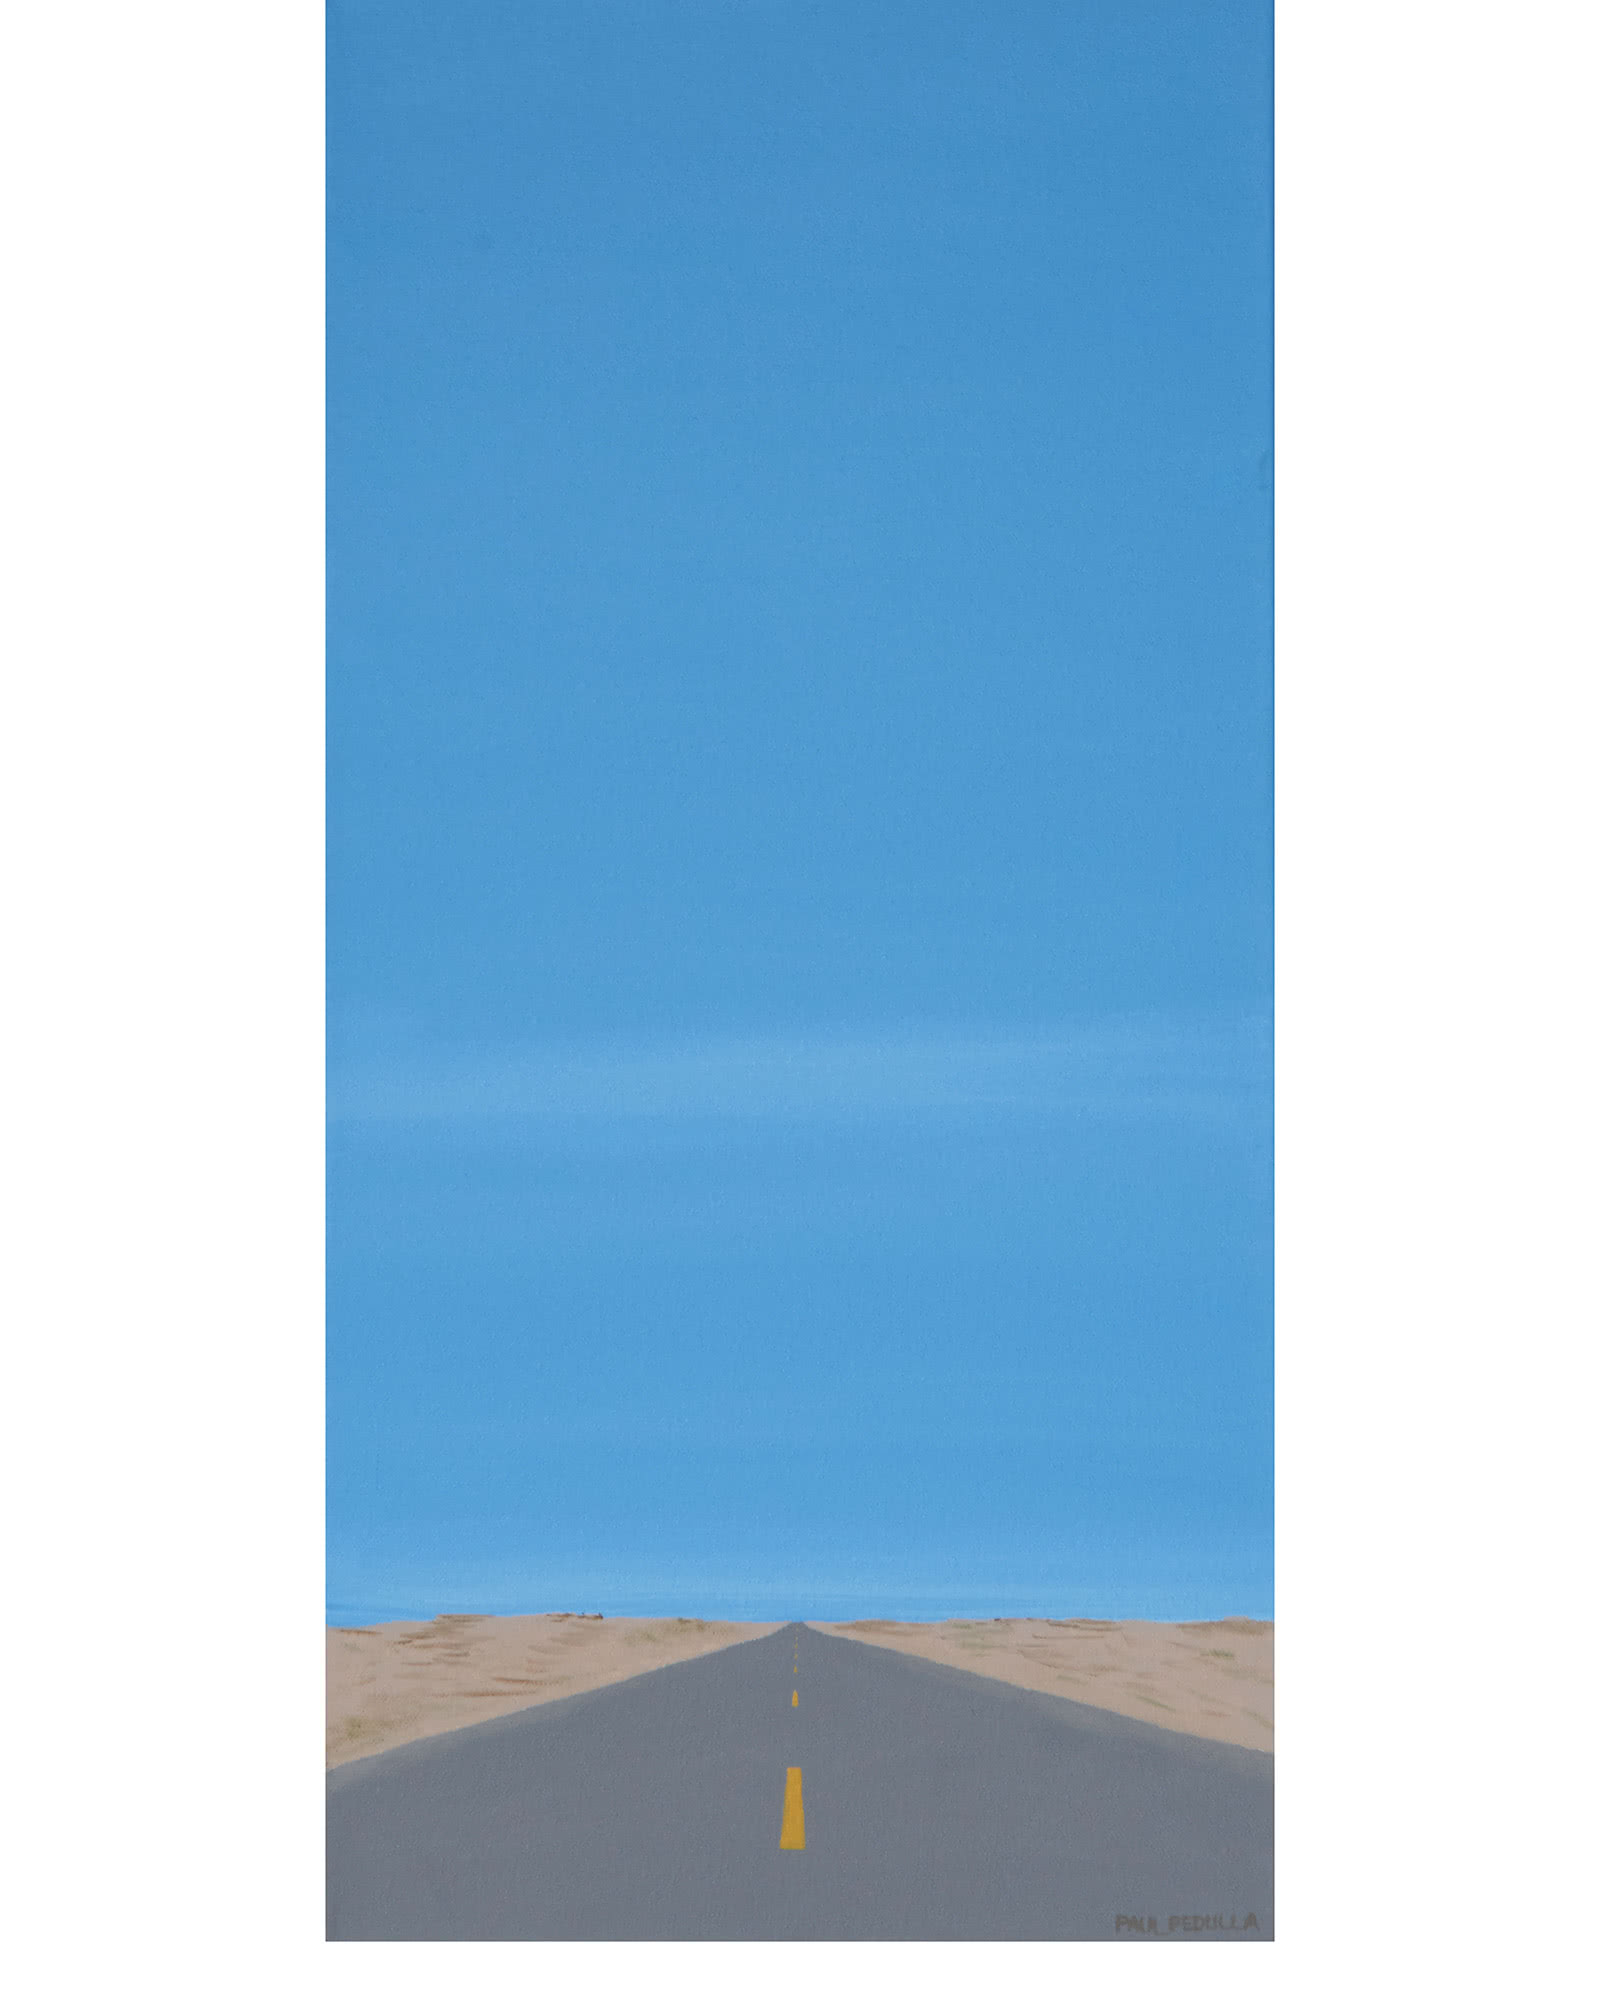 Road, Sand, and Sky by Paul Pedulla